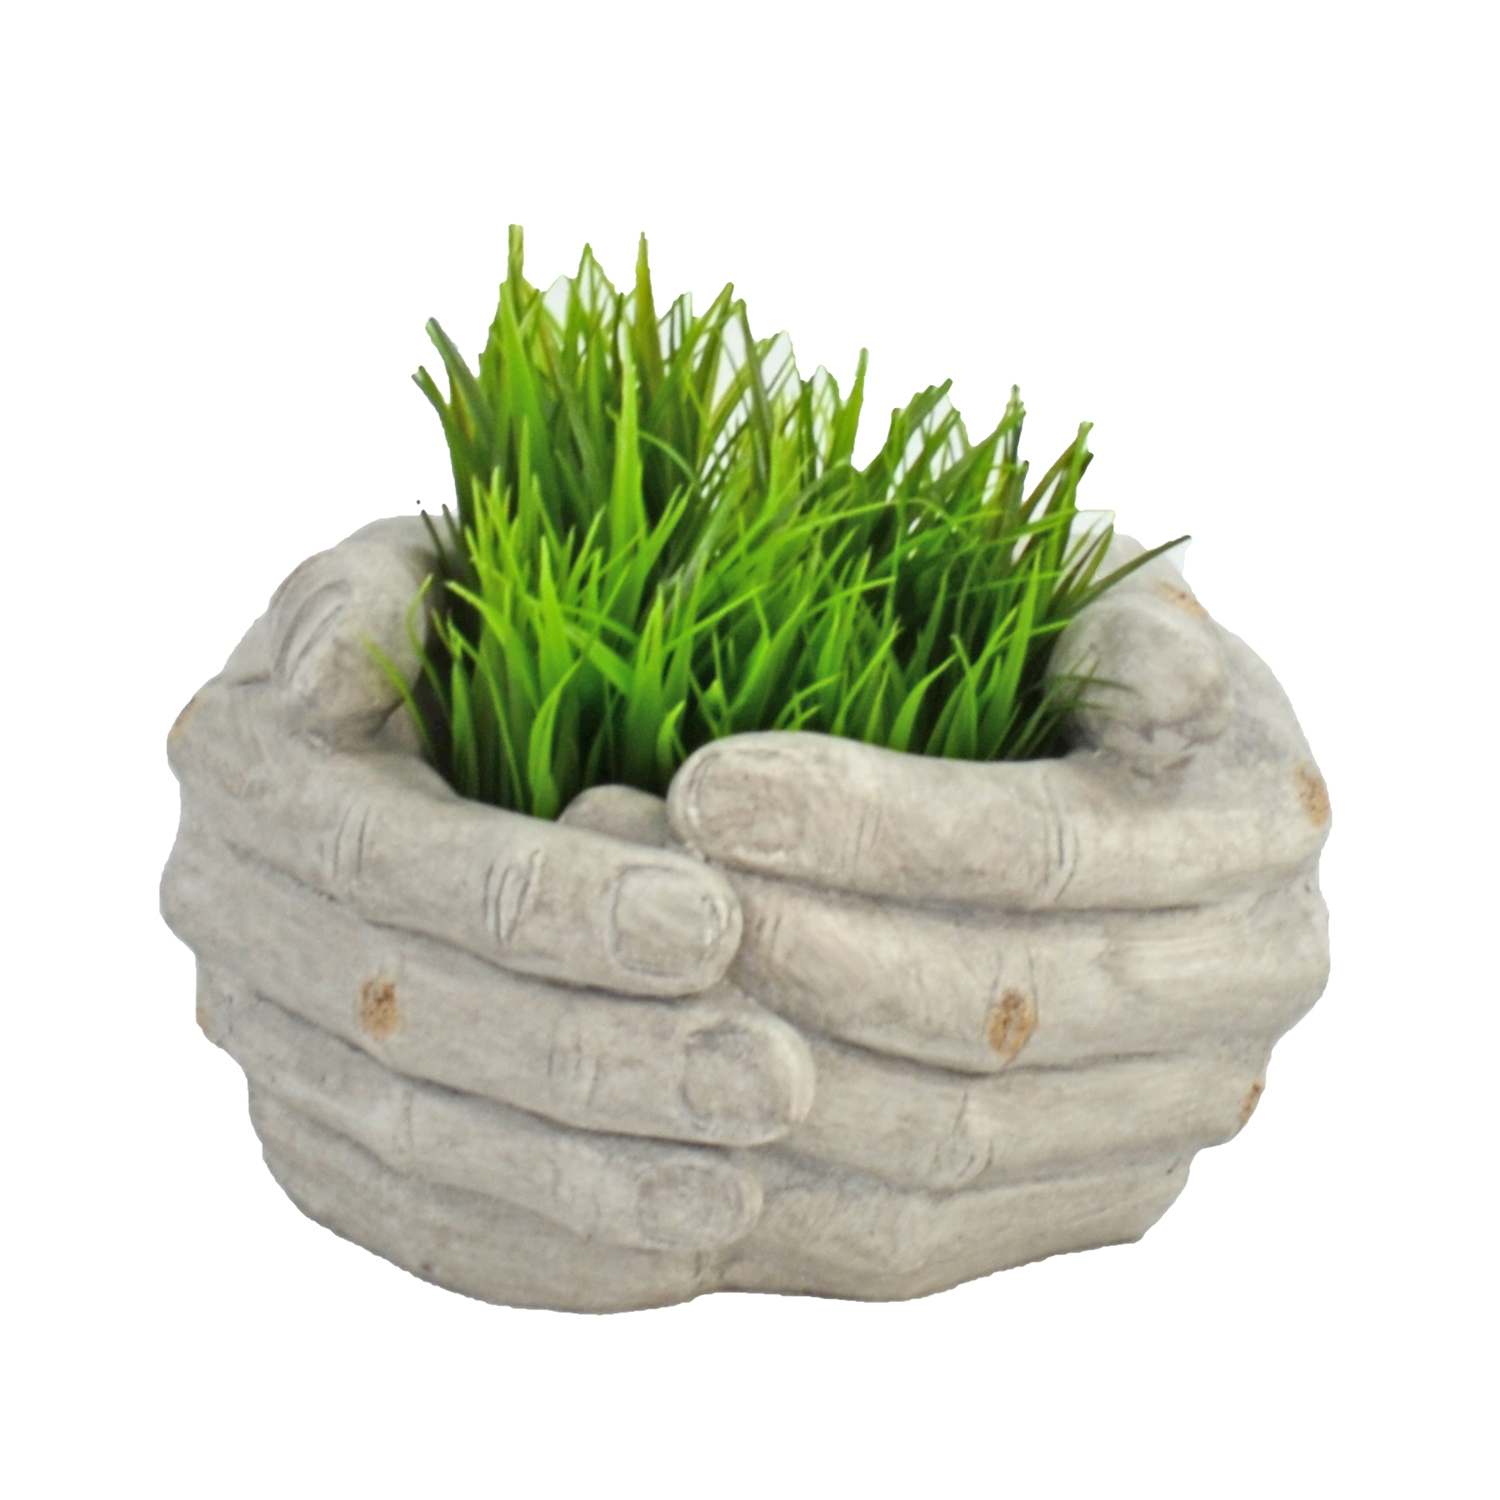 CUPPED HANDS PLANTER 19CM WEATHERED STONE EFFECT PROFILE WS9